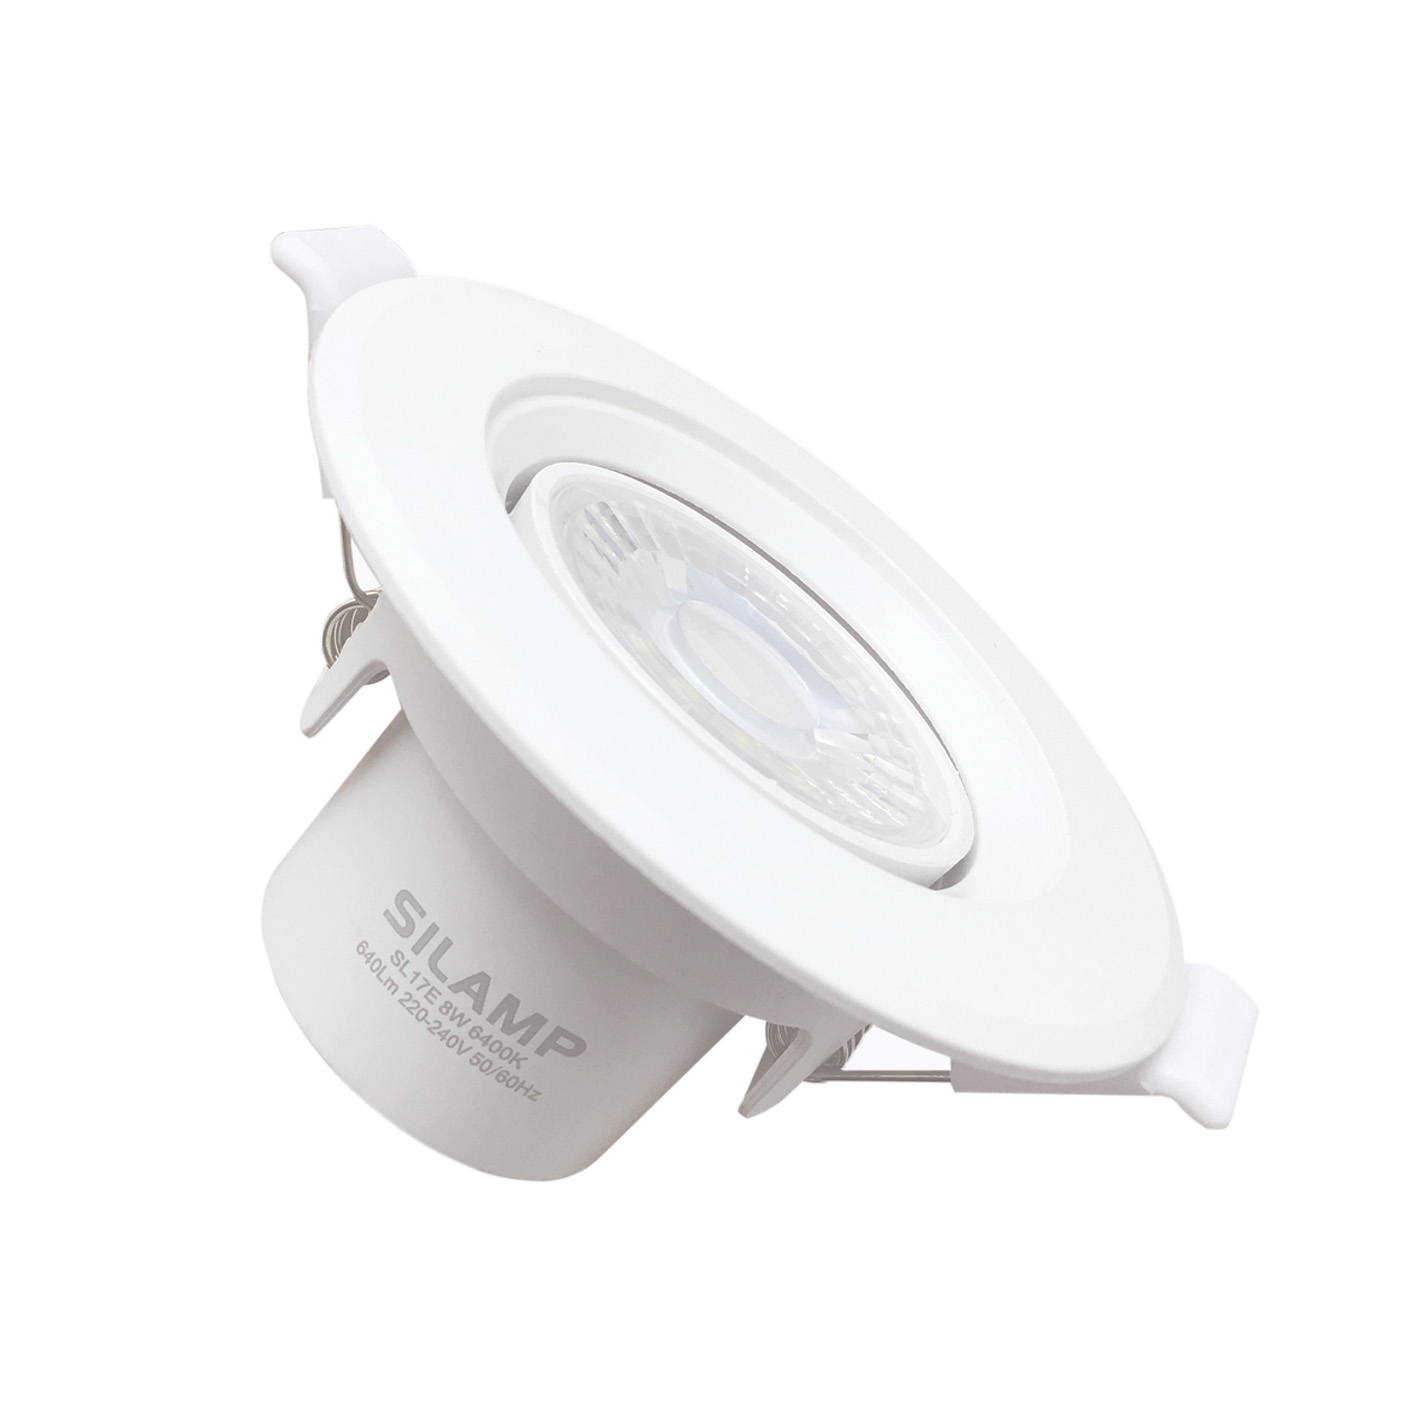 LED spotlight COB 8w adjustable round hole for flush 60-75 mm Fi-OR2